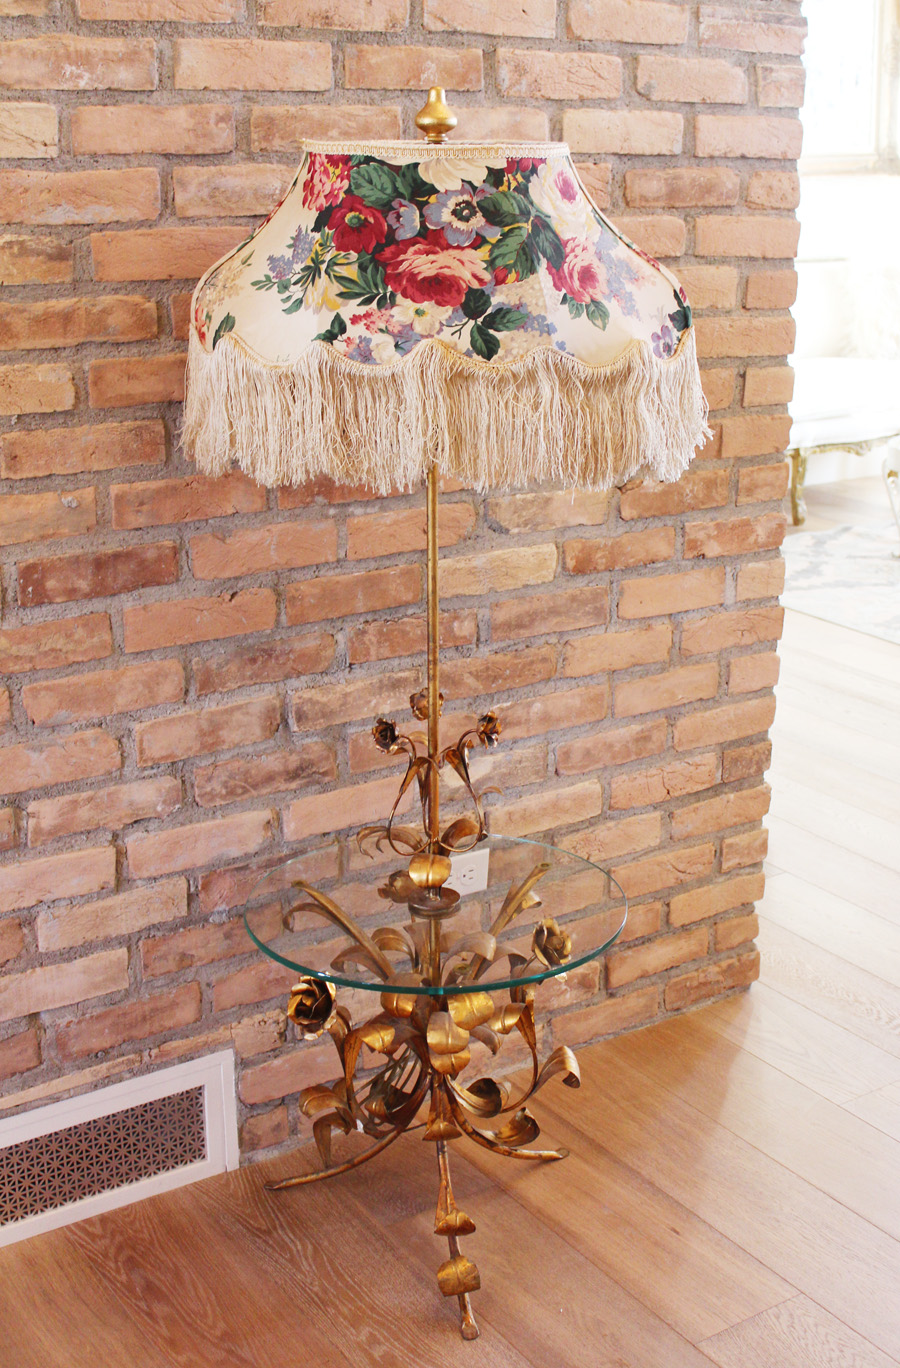 Antique Italian Tole Gilt Roses Floor Table Lamp